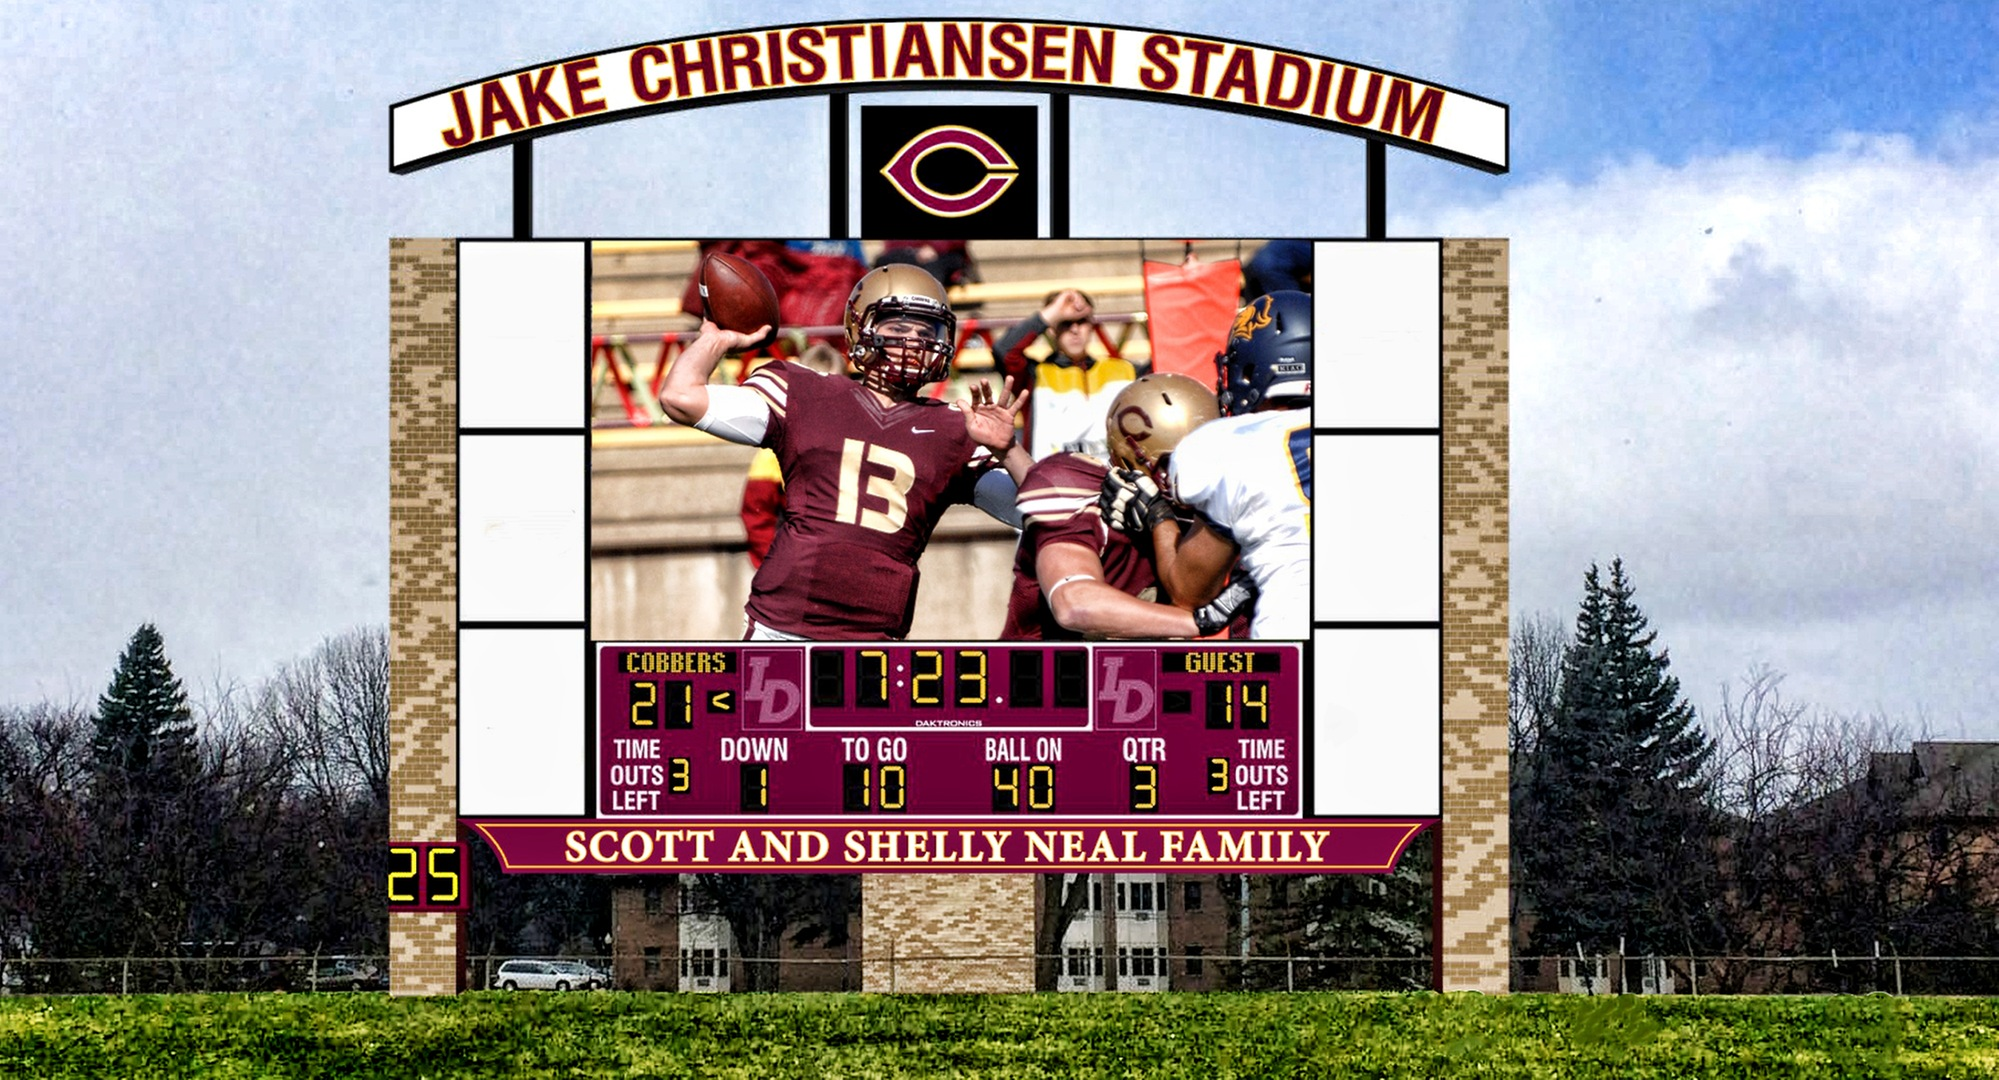 A rendering of the brand new video scoreboard on the west end of Jake Christiansen Stadium.